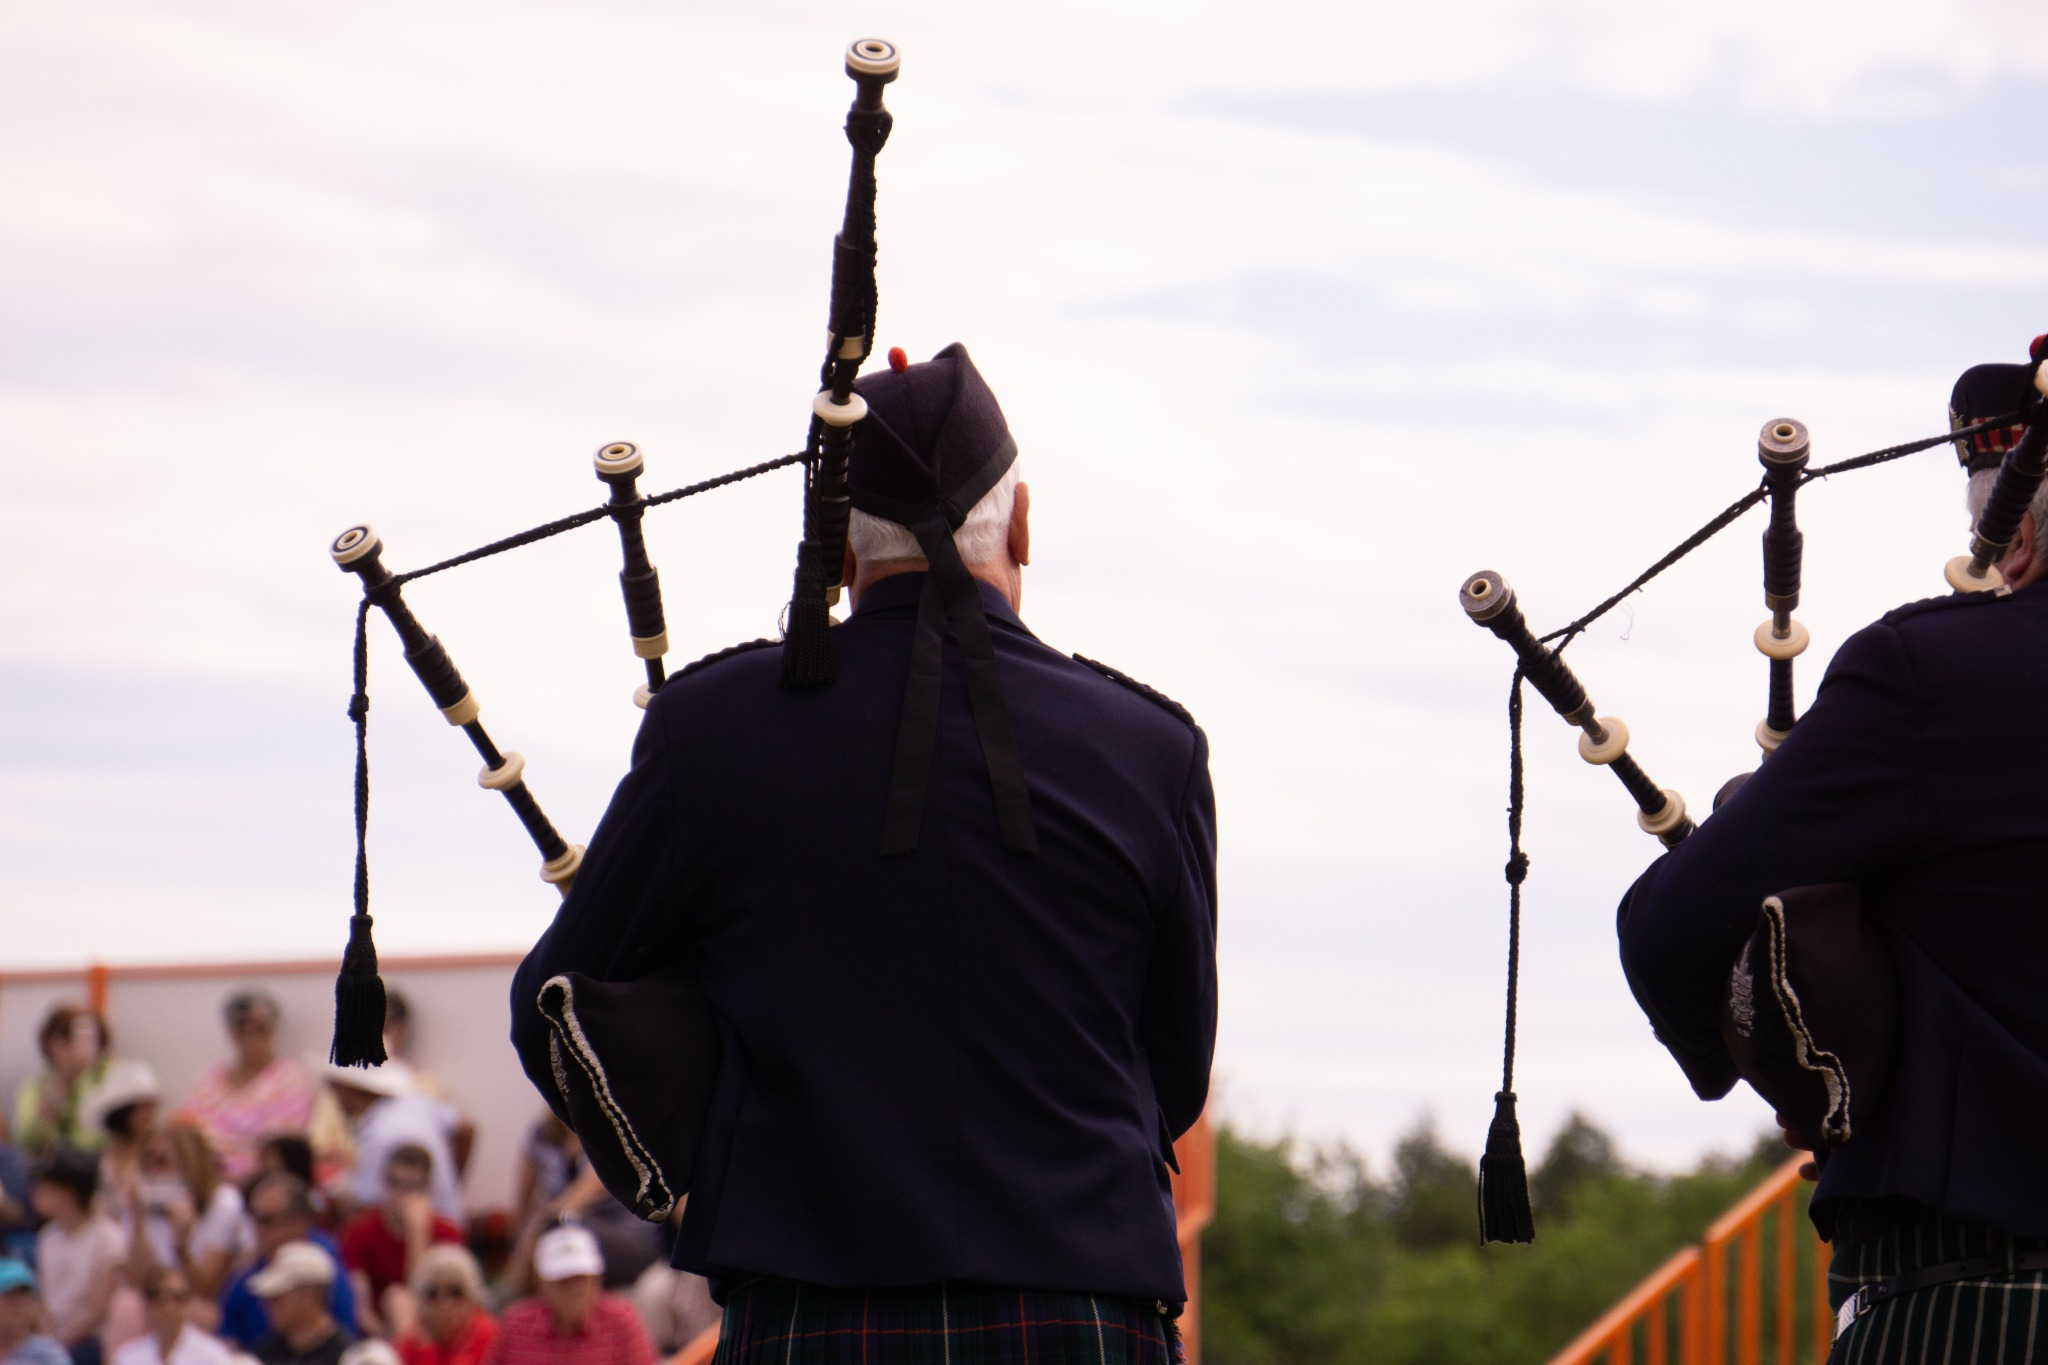 Gentlemen playing bagpipes at a modern event.